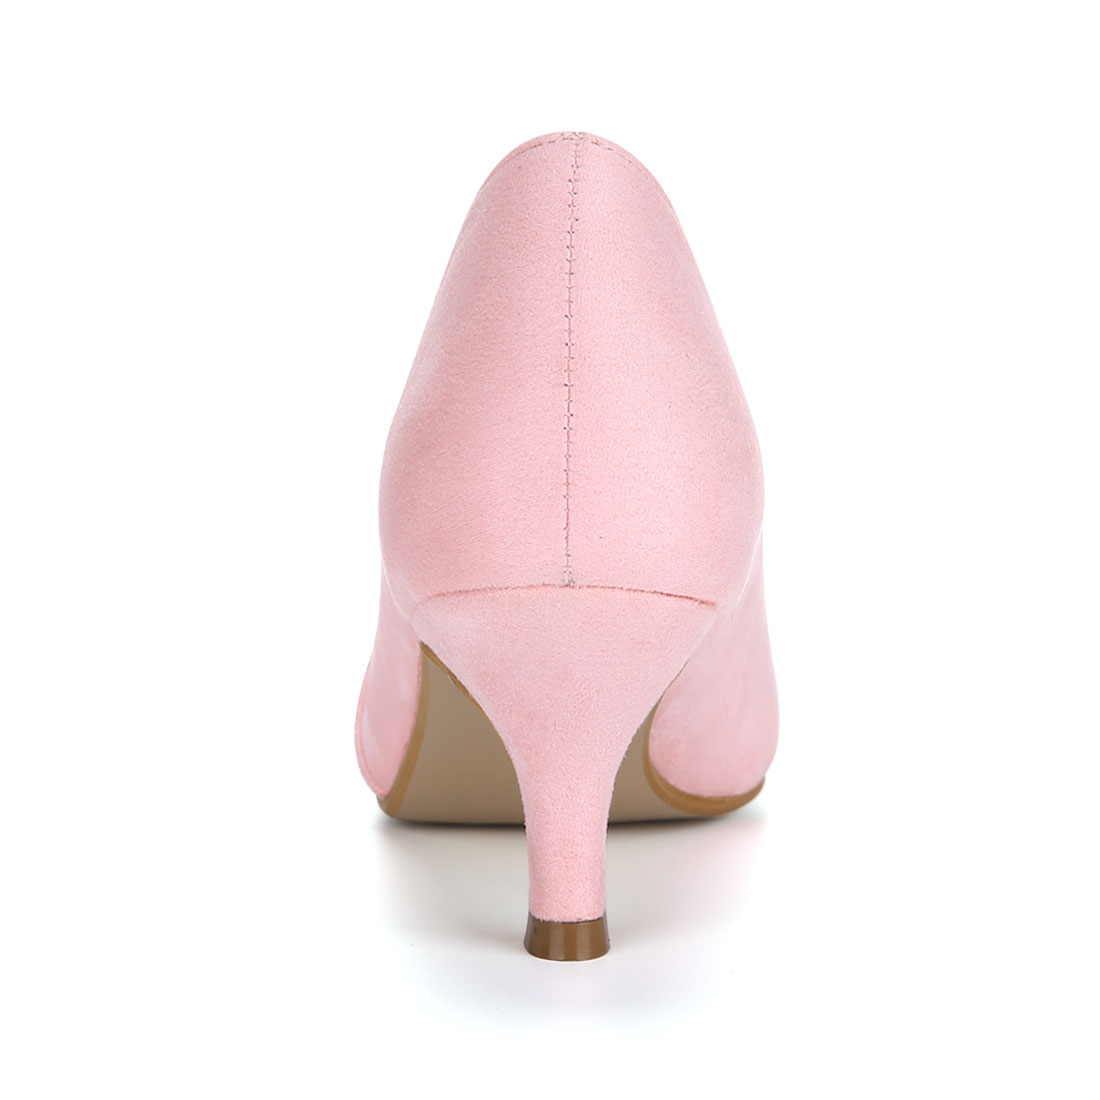 HF-27 Women Pointed Toe Mid Stiletto Heel Pumps Pink/US 9.5 - image 6 of 7